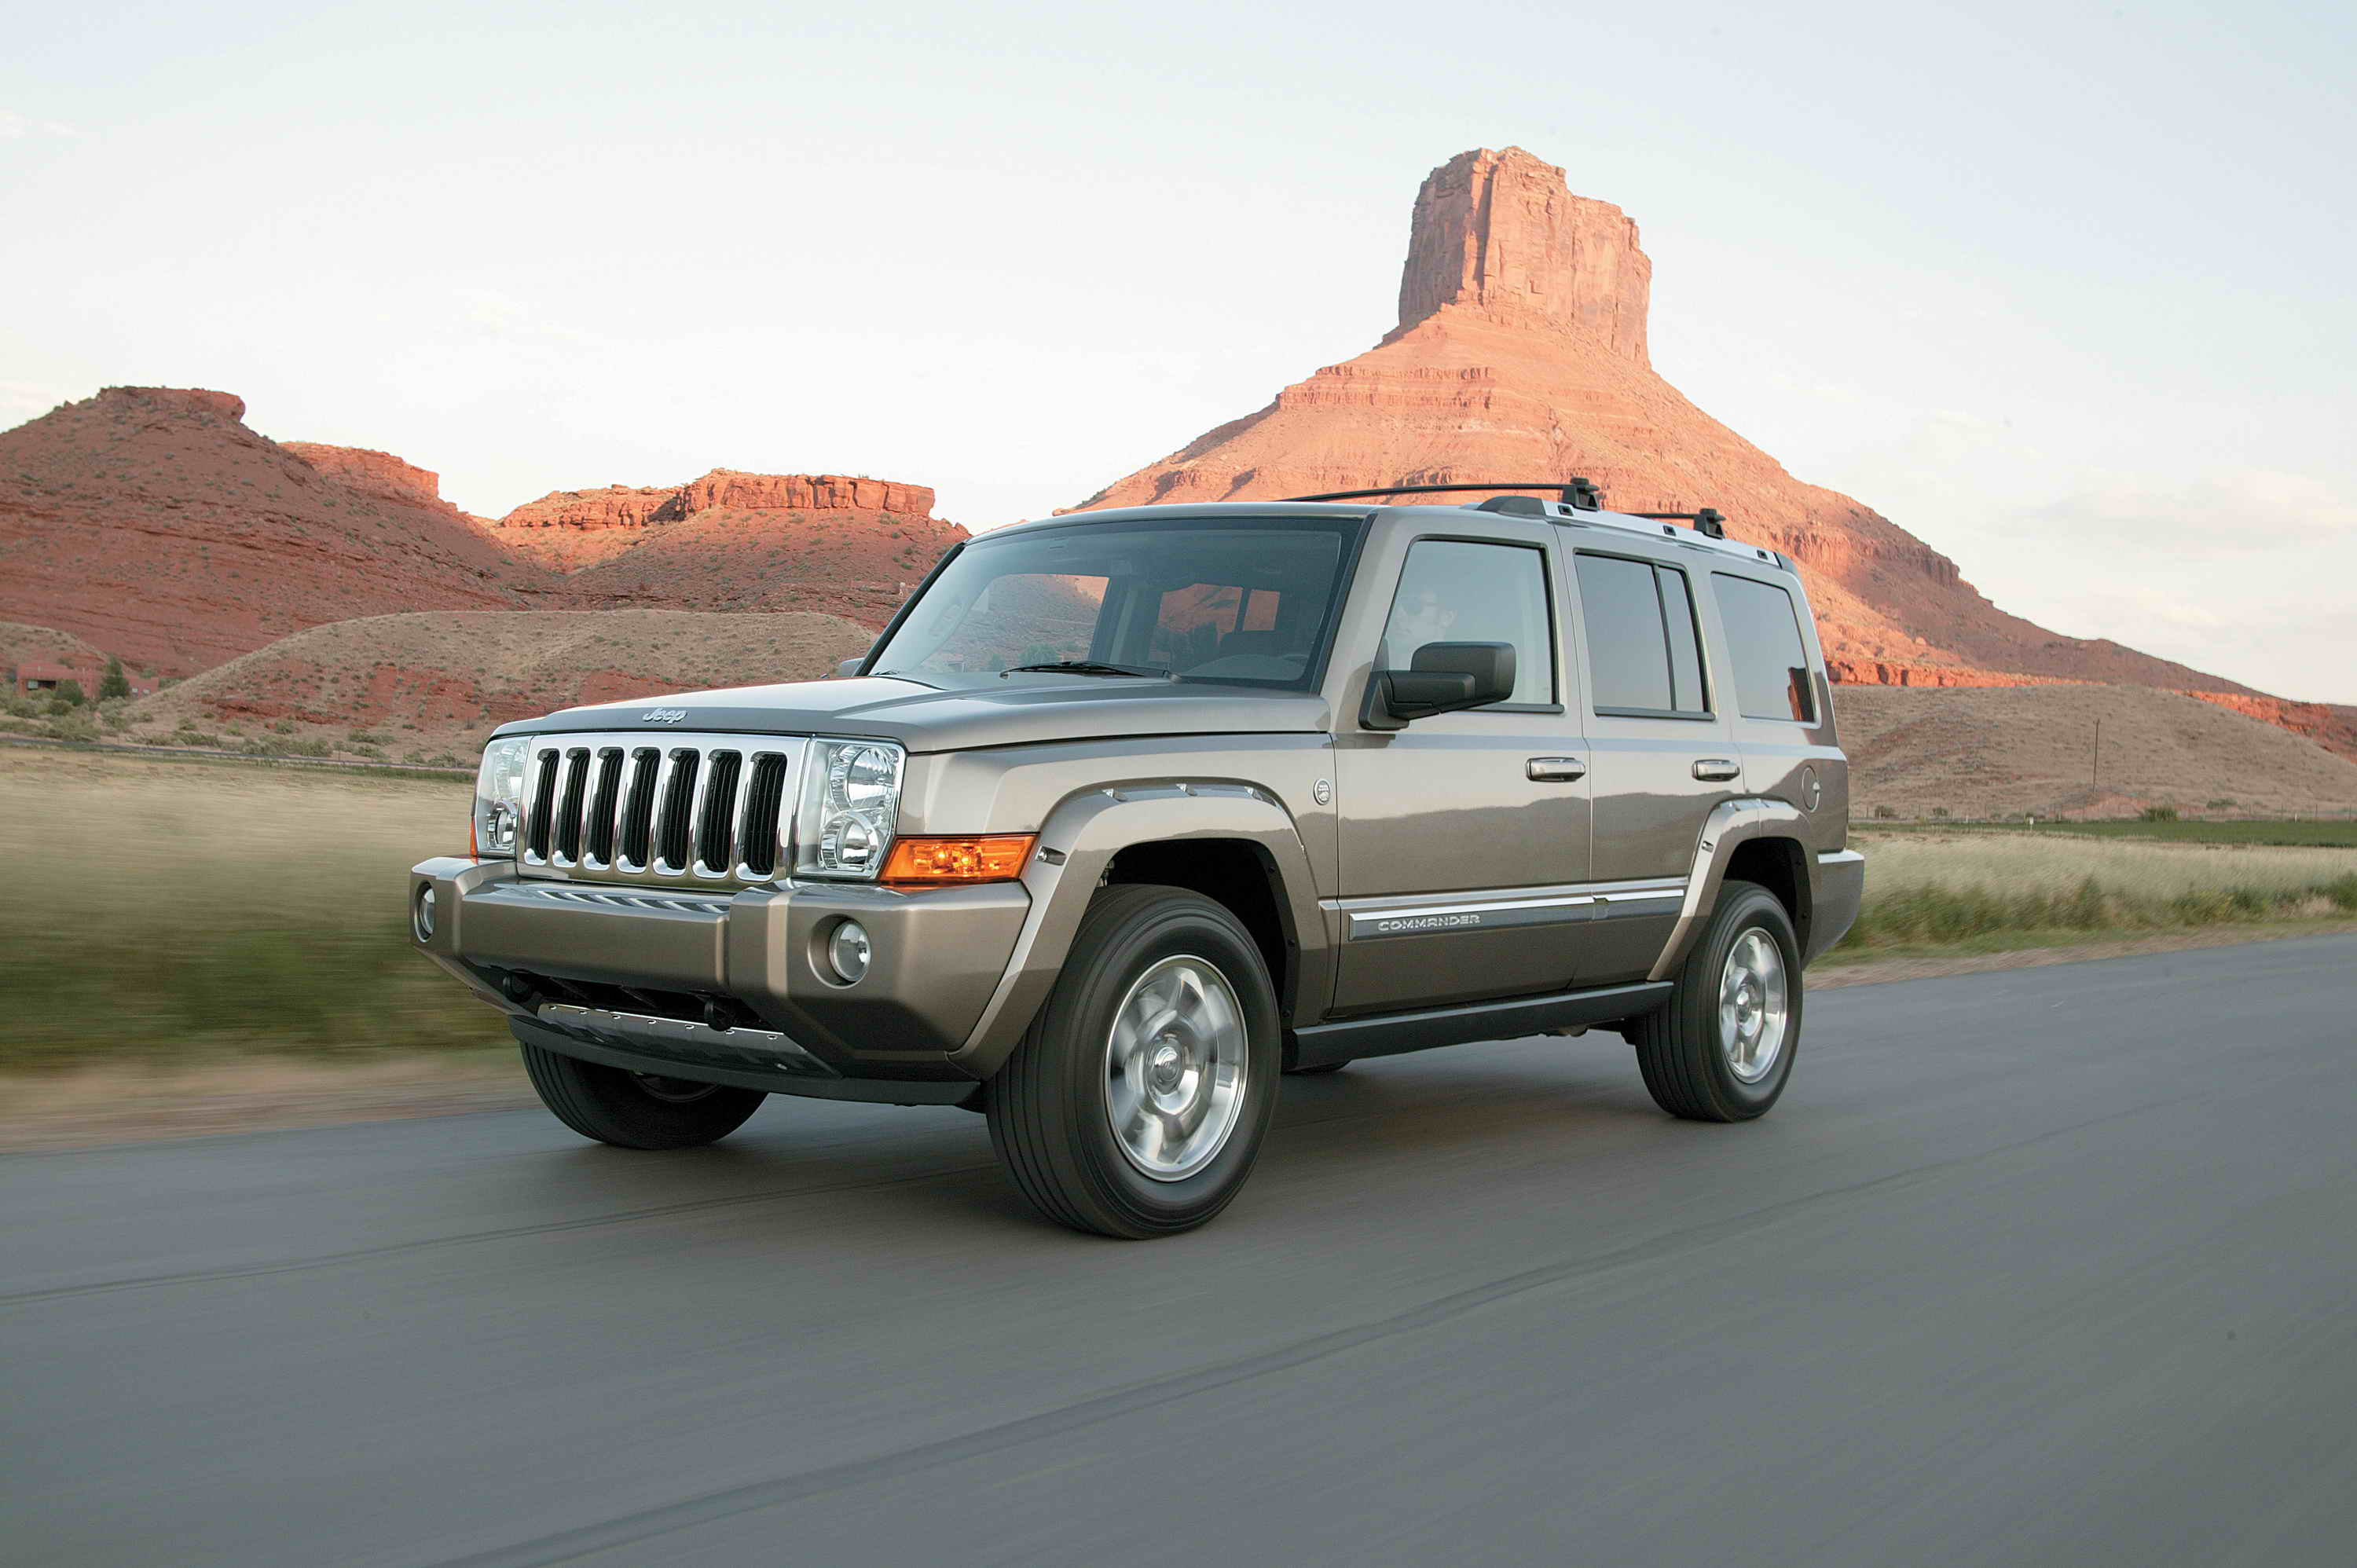 2006 Jeep mander Review Top Speed